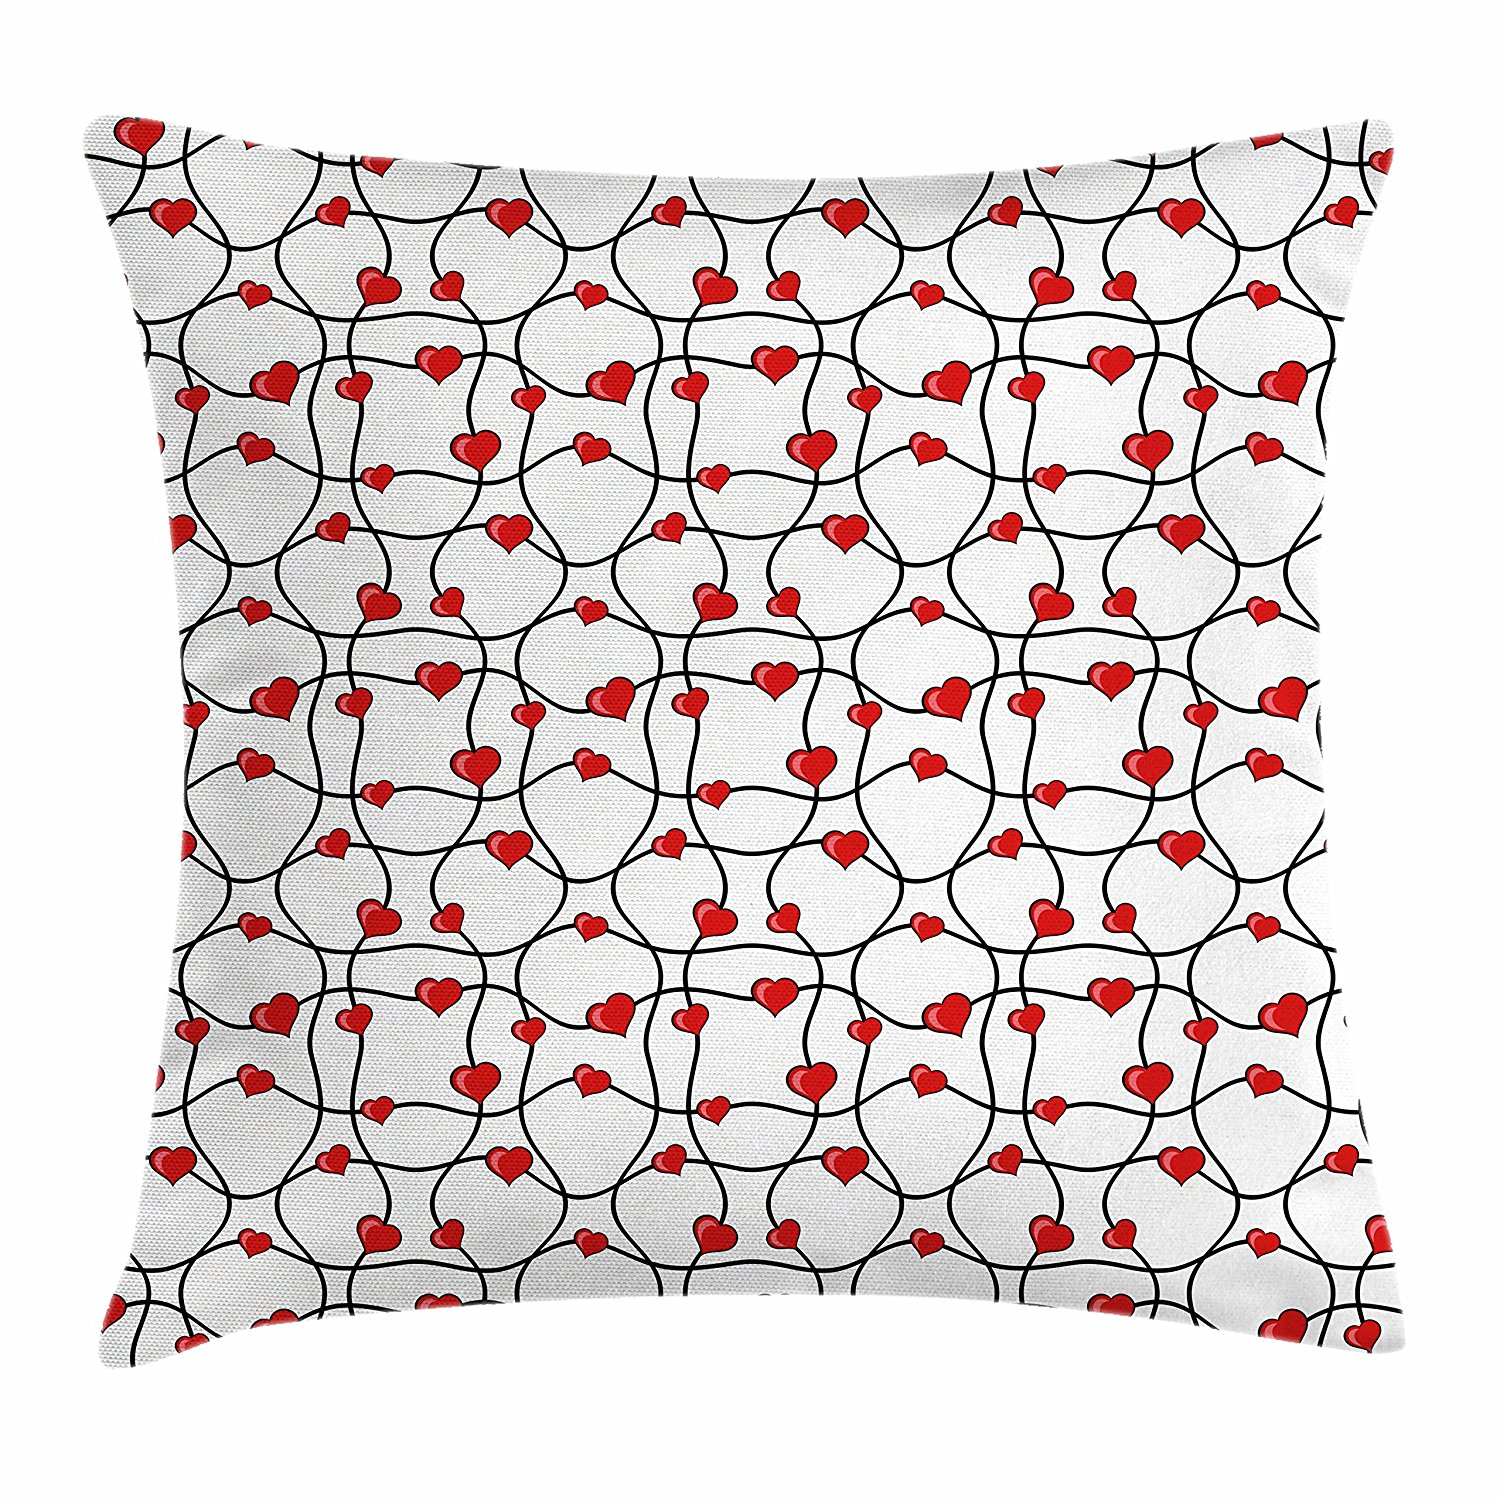 Lunarable Hearts Throw Pillow Cushion Cover, Abstract Lines with Hearts Geometrical Image Love Themed Modern Surreal Design, Decorative Square Accent Pillow Case, 28 X 28 Inches, Red Black White